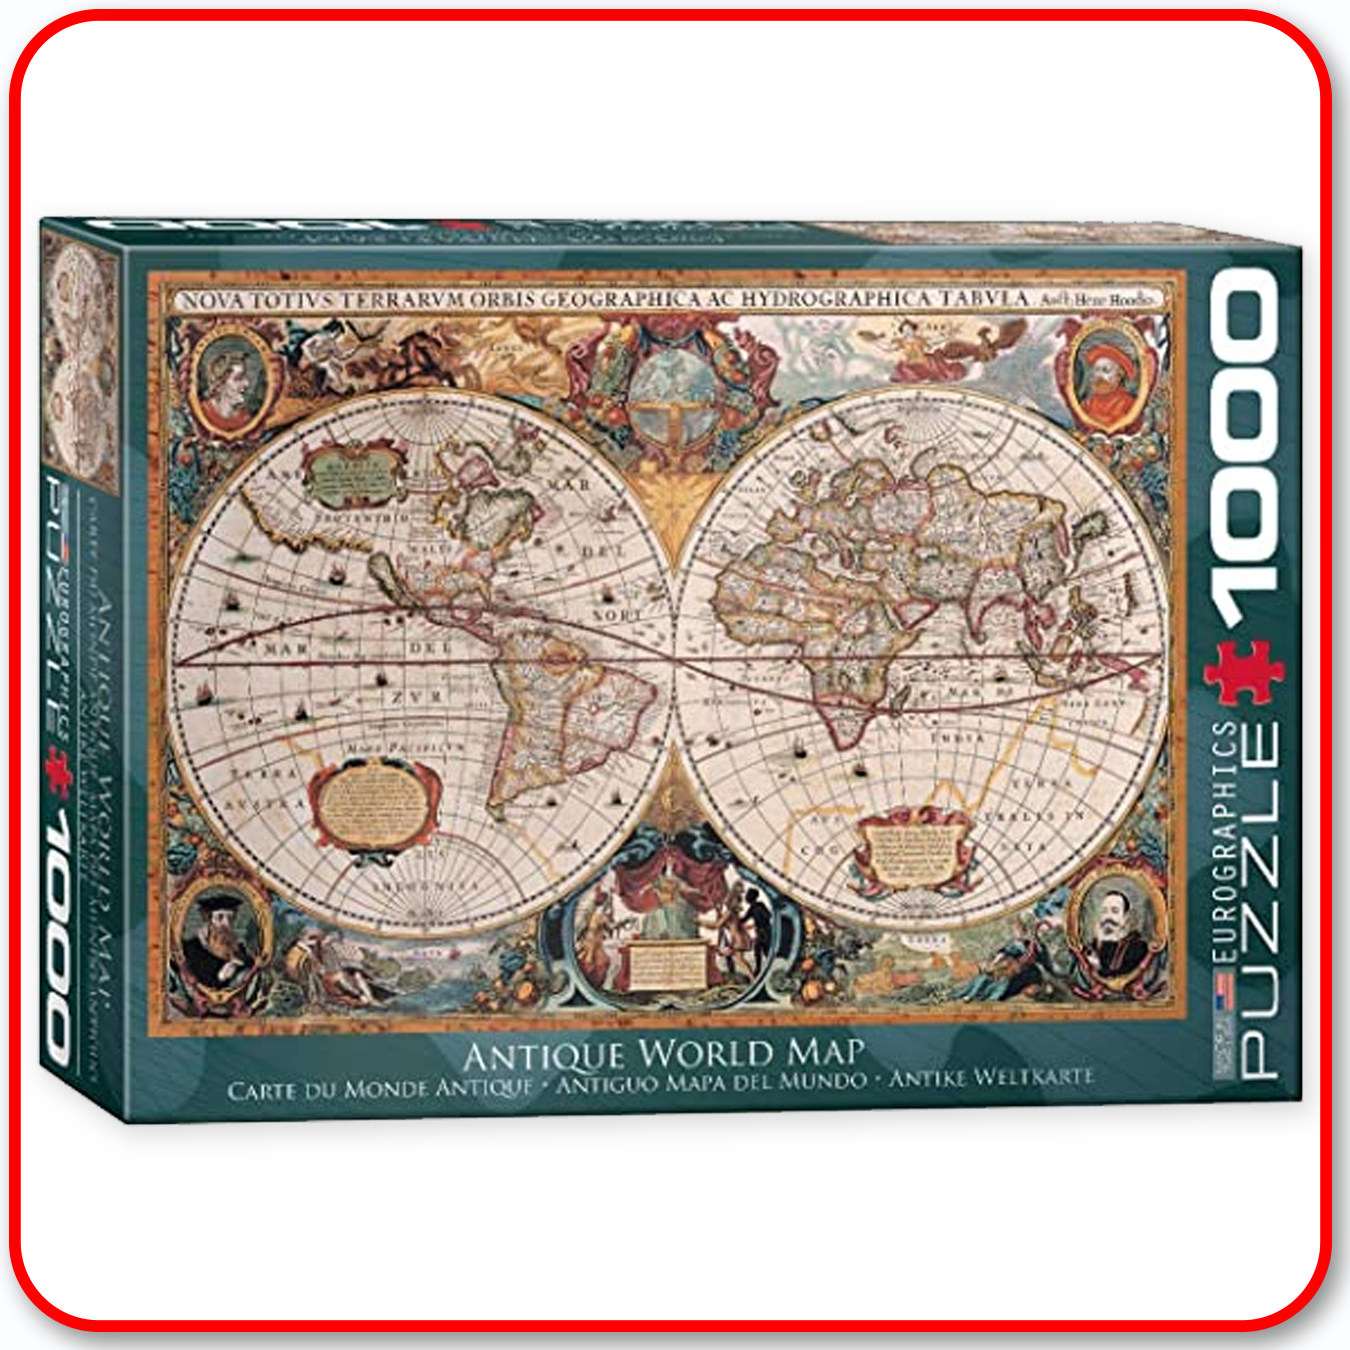 Antique World Map - 1000pc Eurographics Puzzle